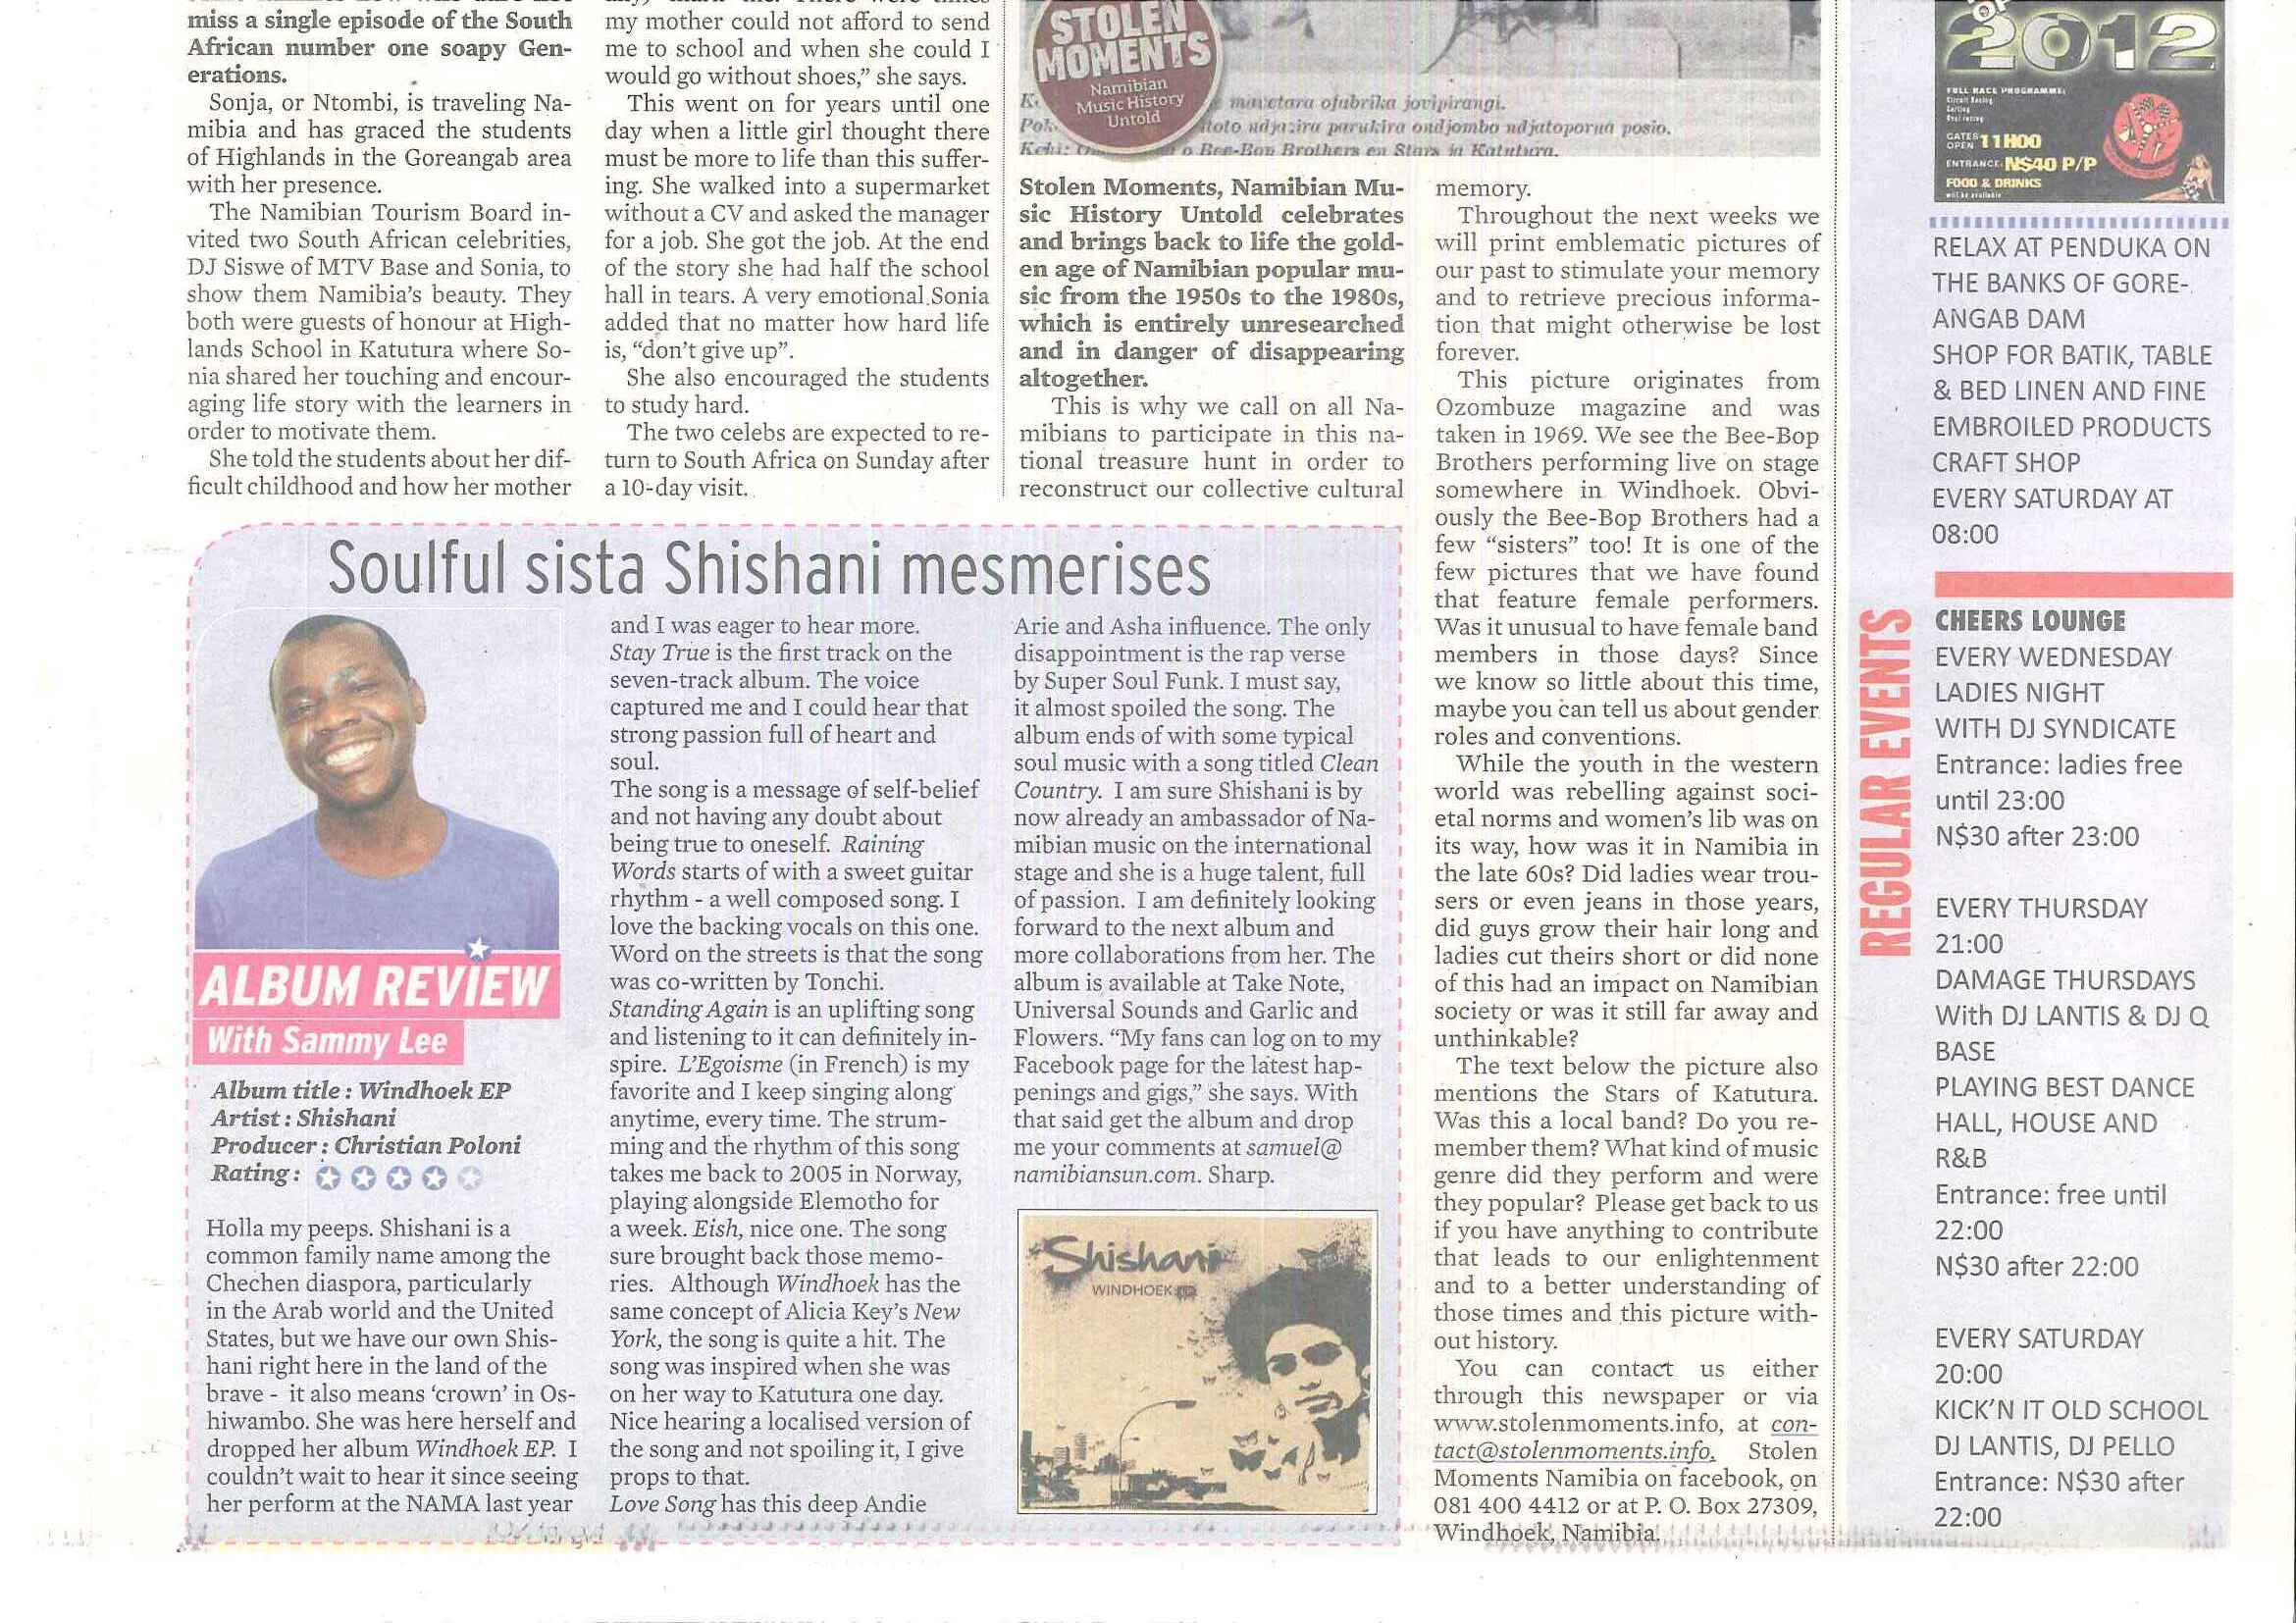 Shishani -CD review Namibian Sun 23 March 2012.jpg